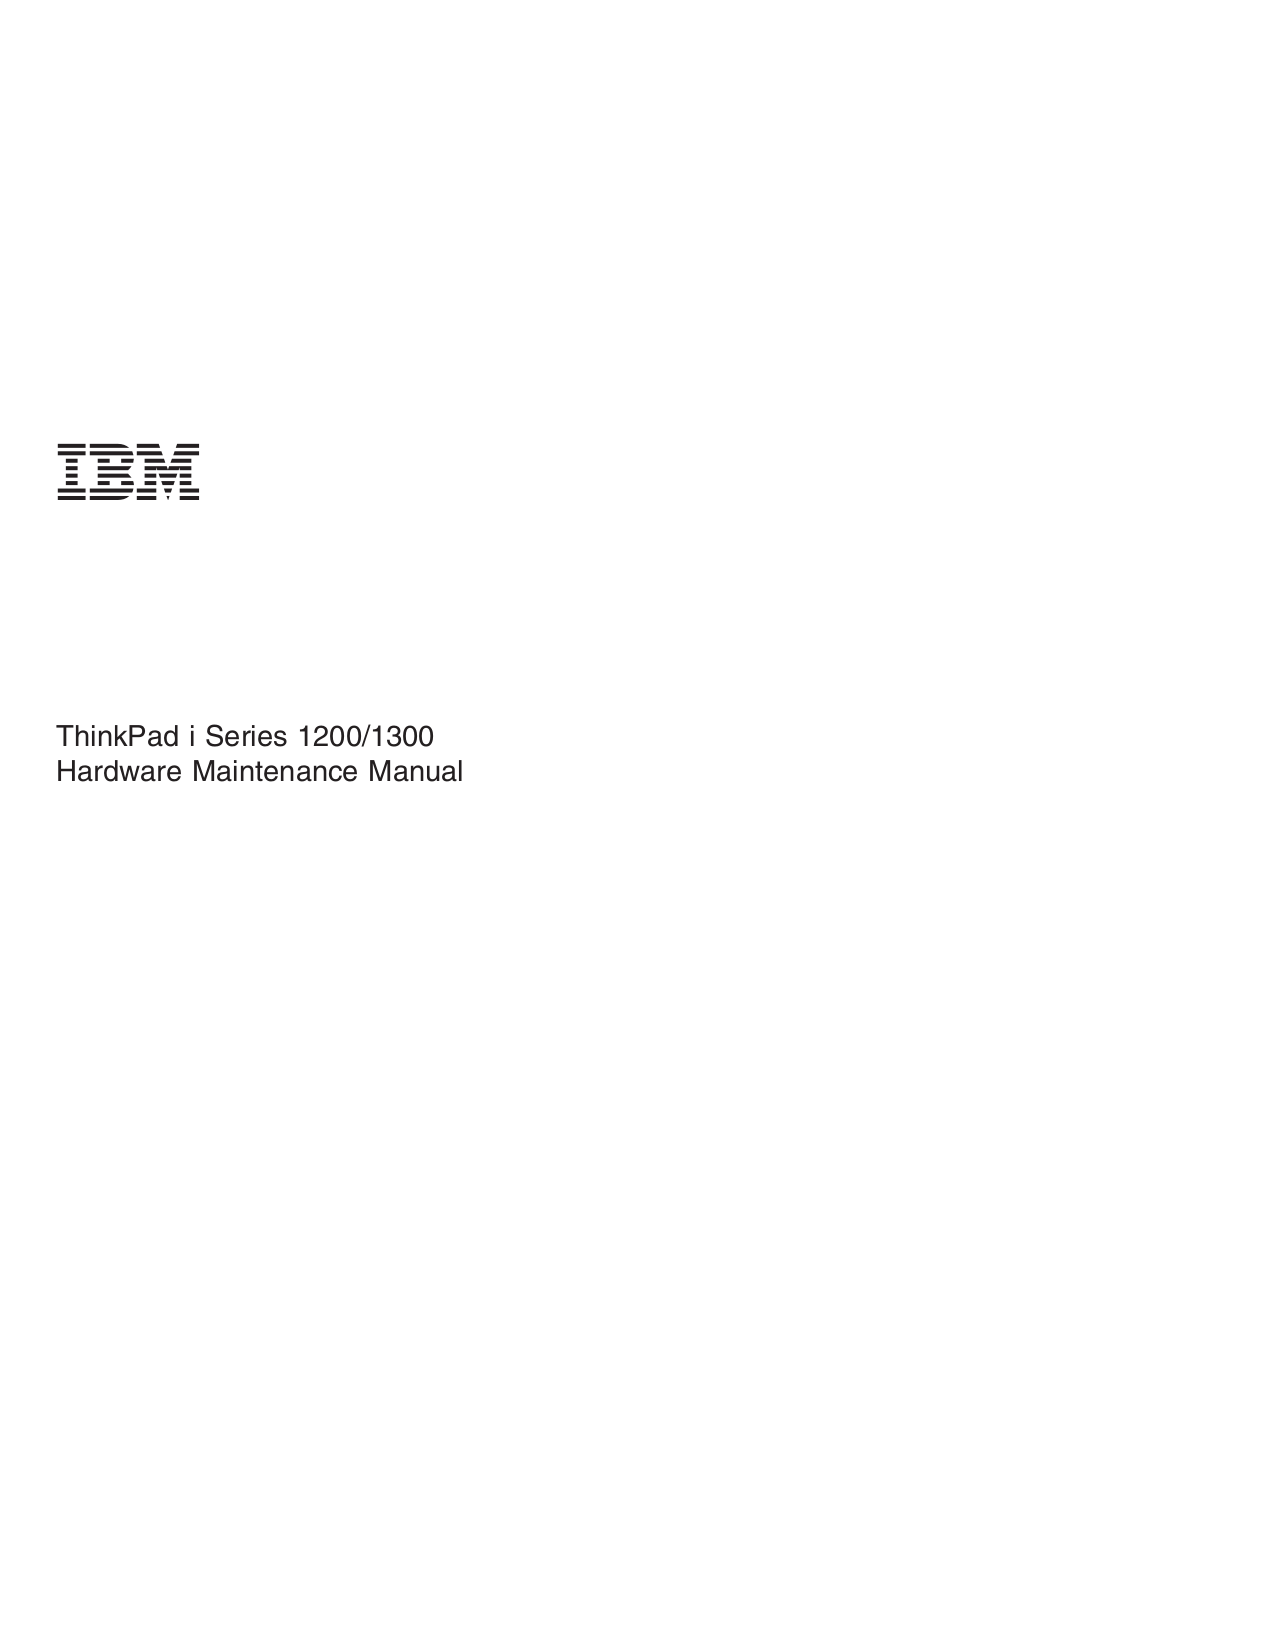 pdf for IBM Laptop ThinkPad 380E manual